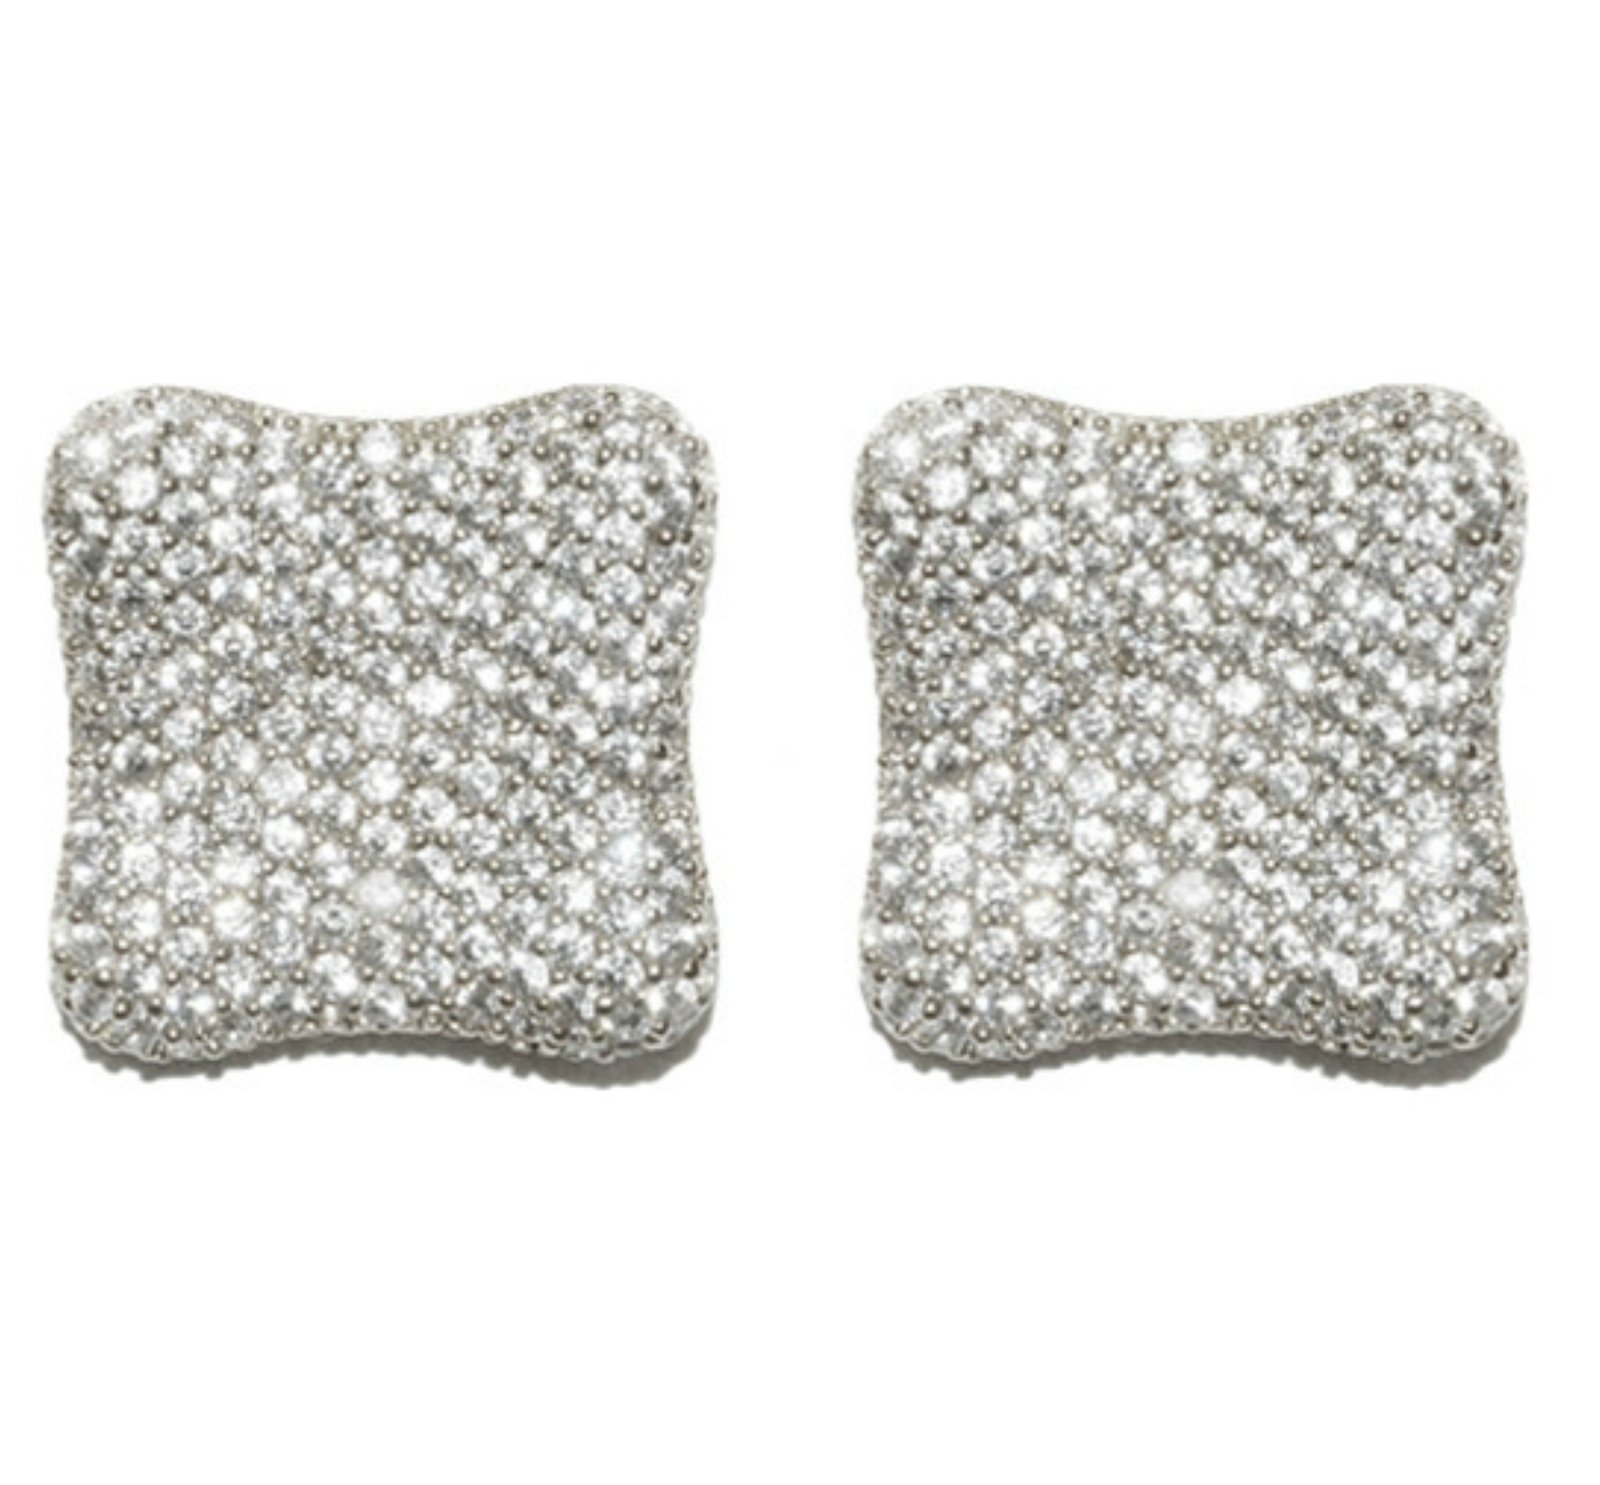 pave square modern fashion studs stud earrings cubic zirconia cz faux diamond earring jewerly 2